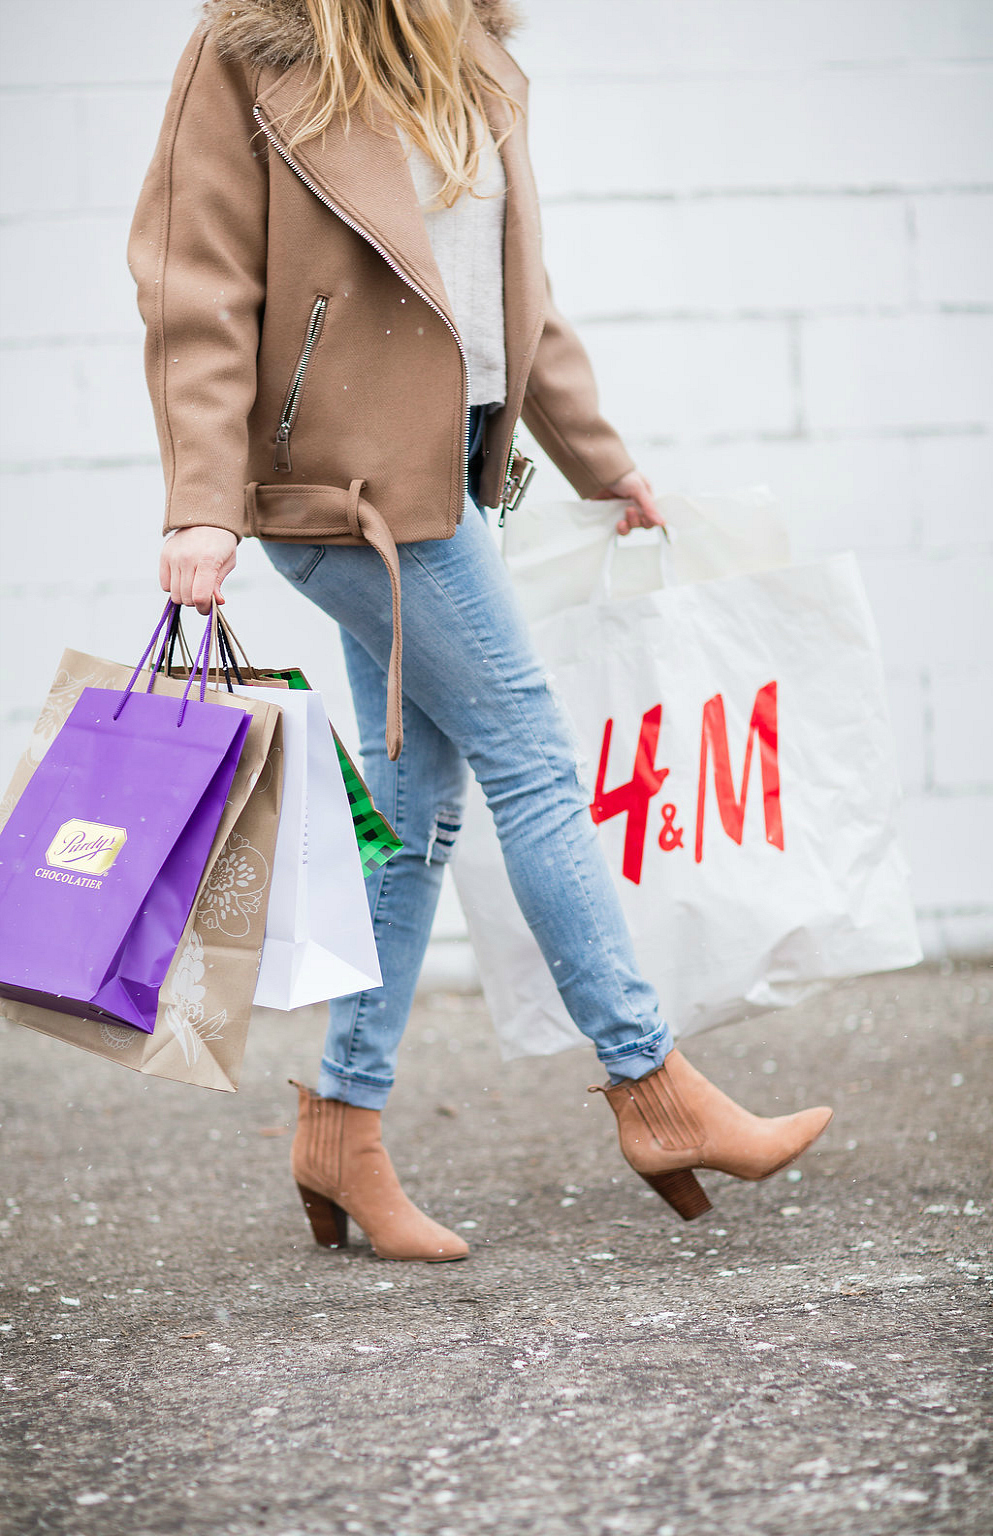 devonshire-mall-rosecitystyleguide-last-minute-gift-guide-2017-holiday-shopping-windsor-2